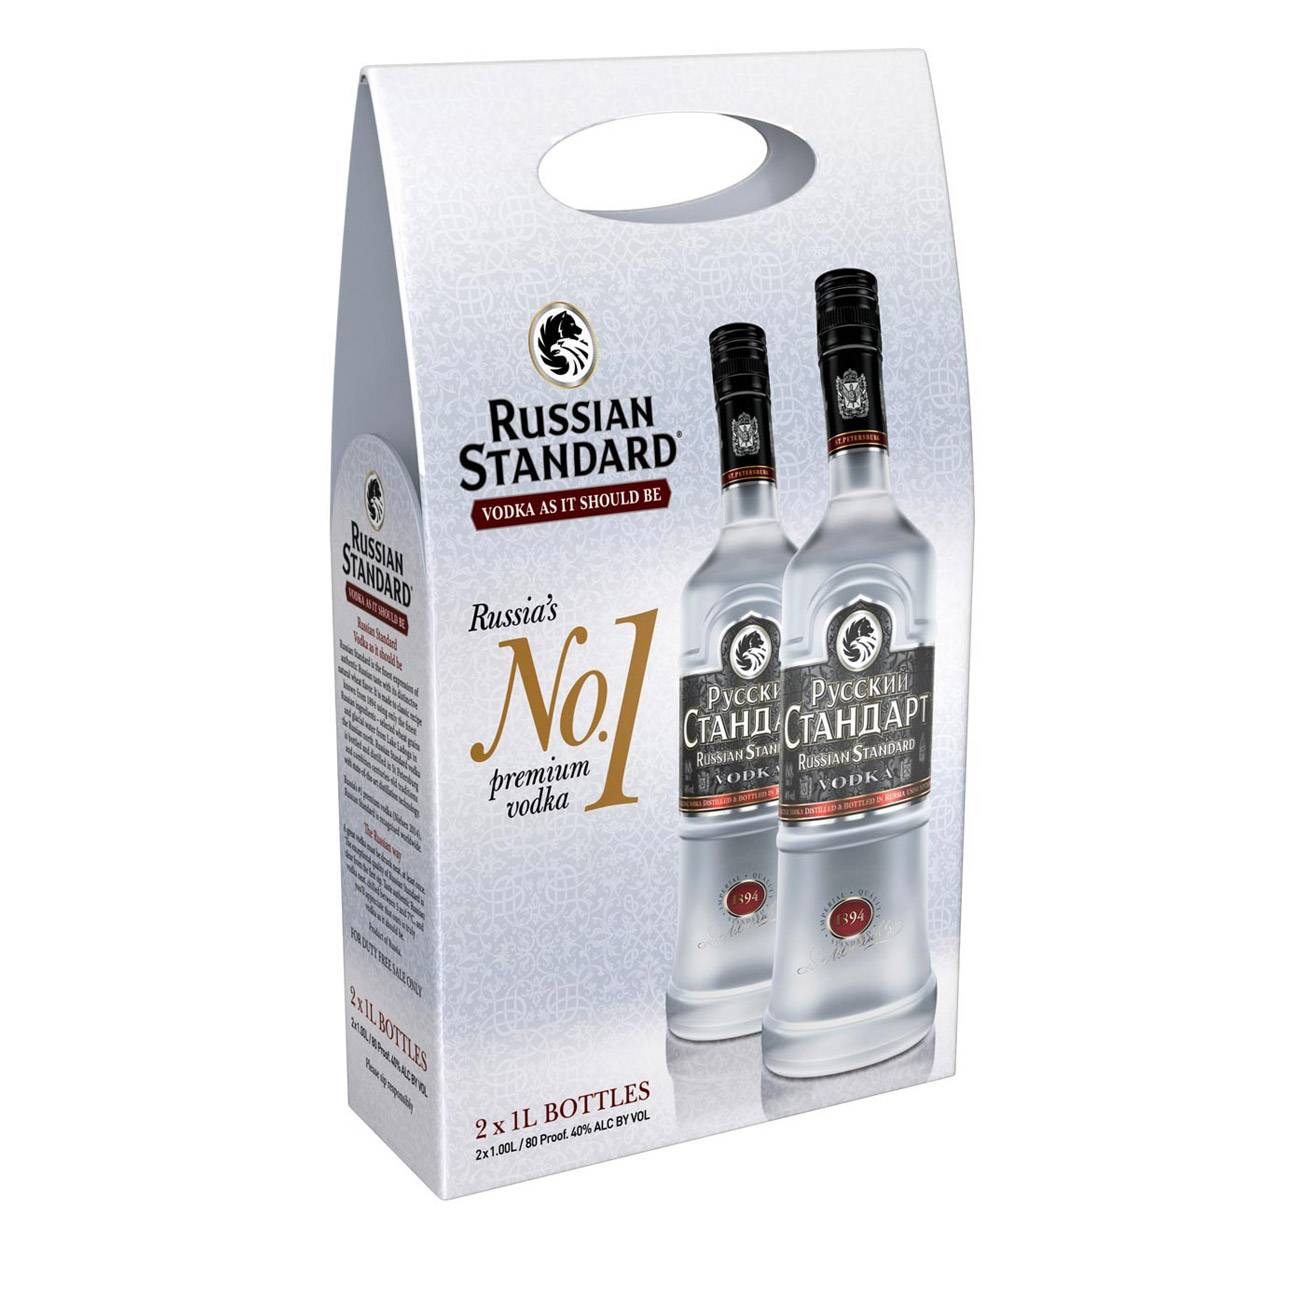 Vodka, Vodka 2X1L 2000 Ml, Russky Standard